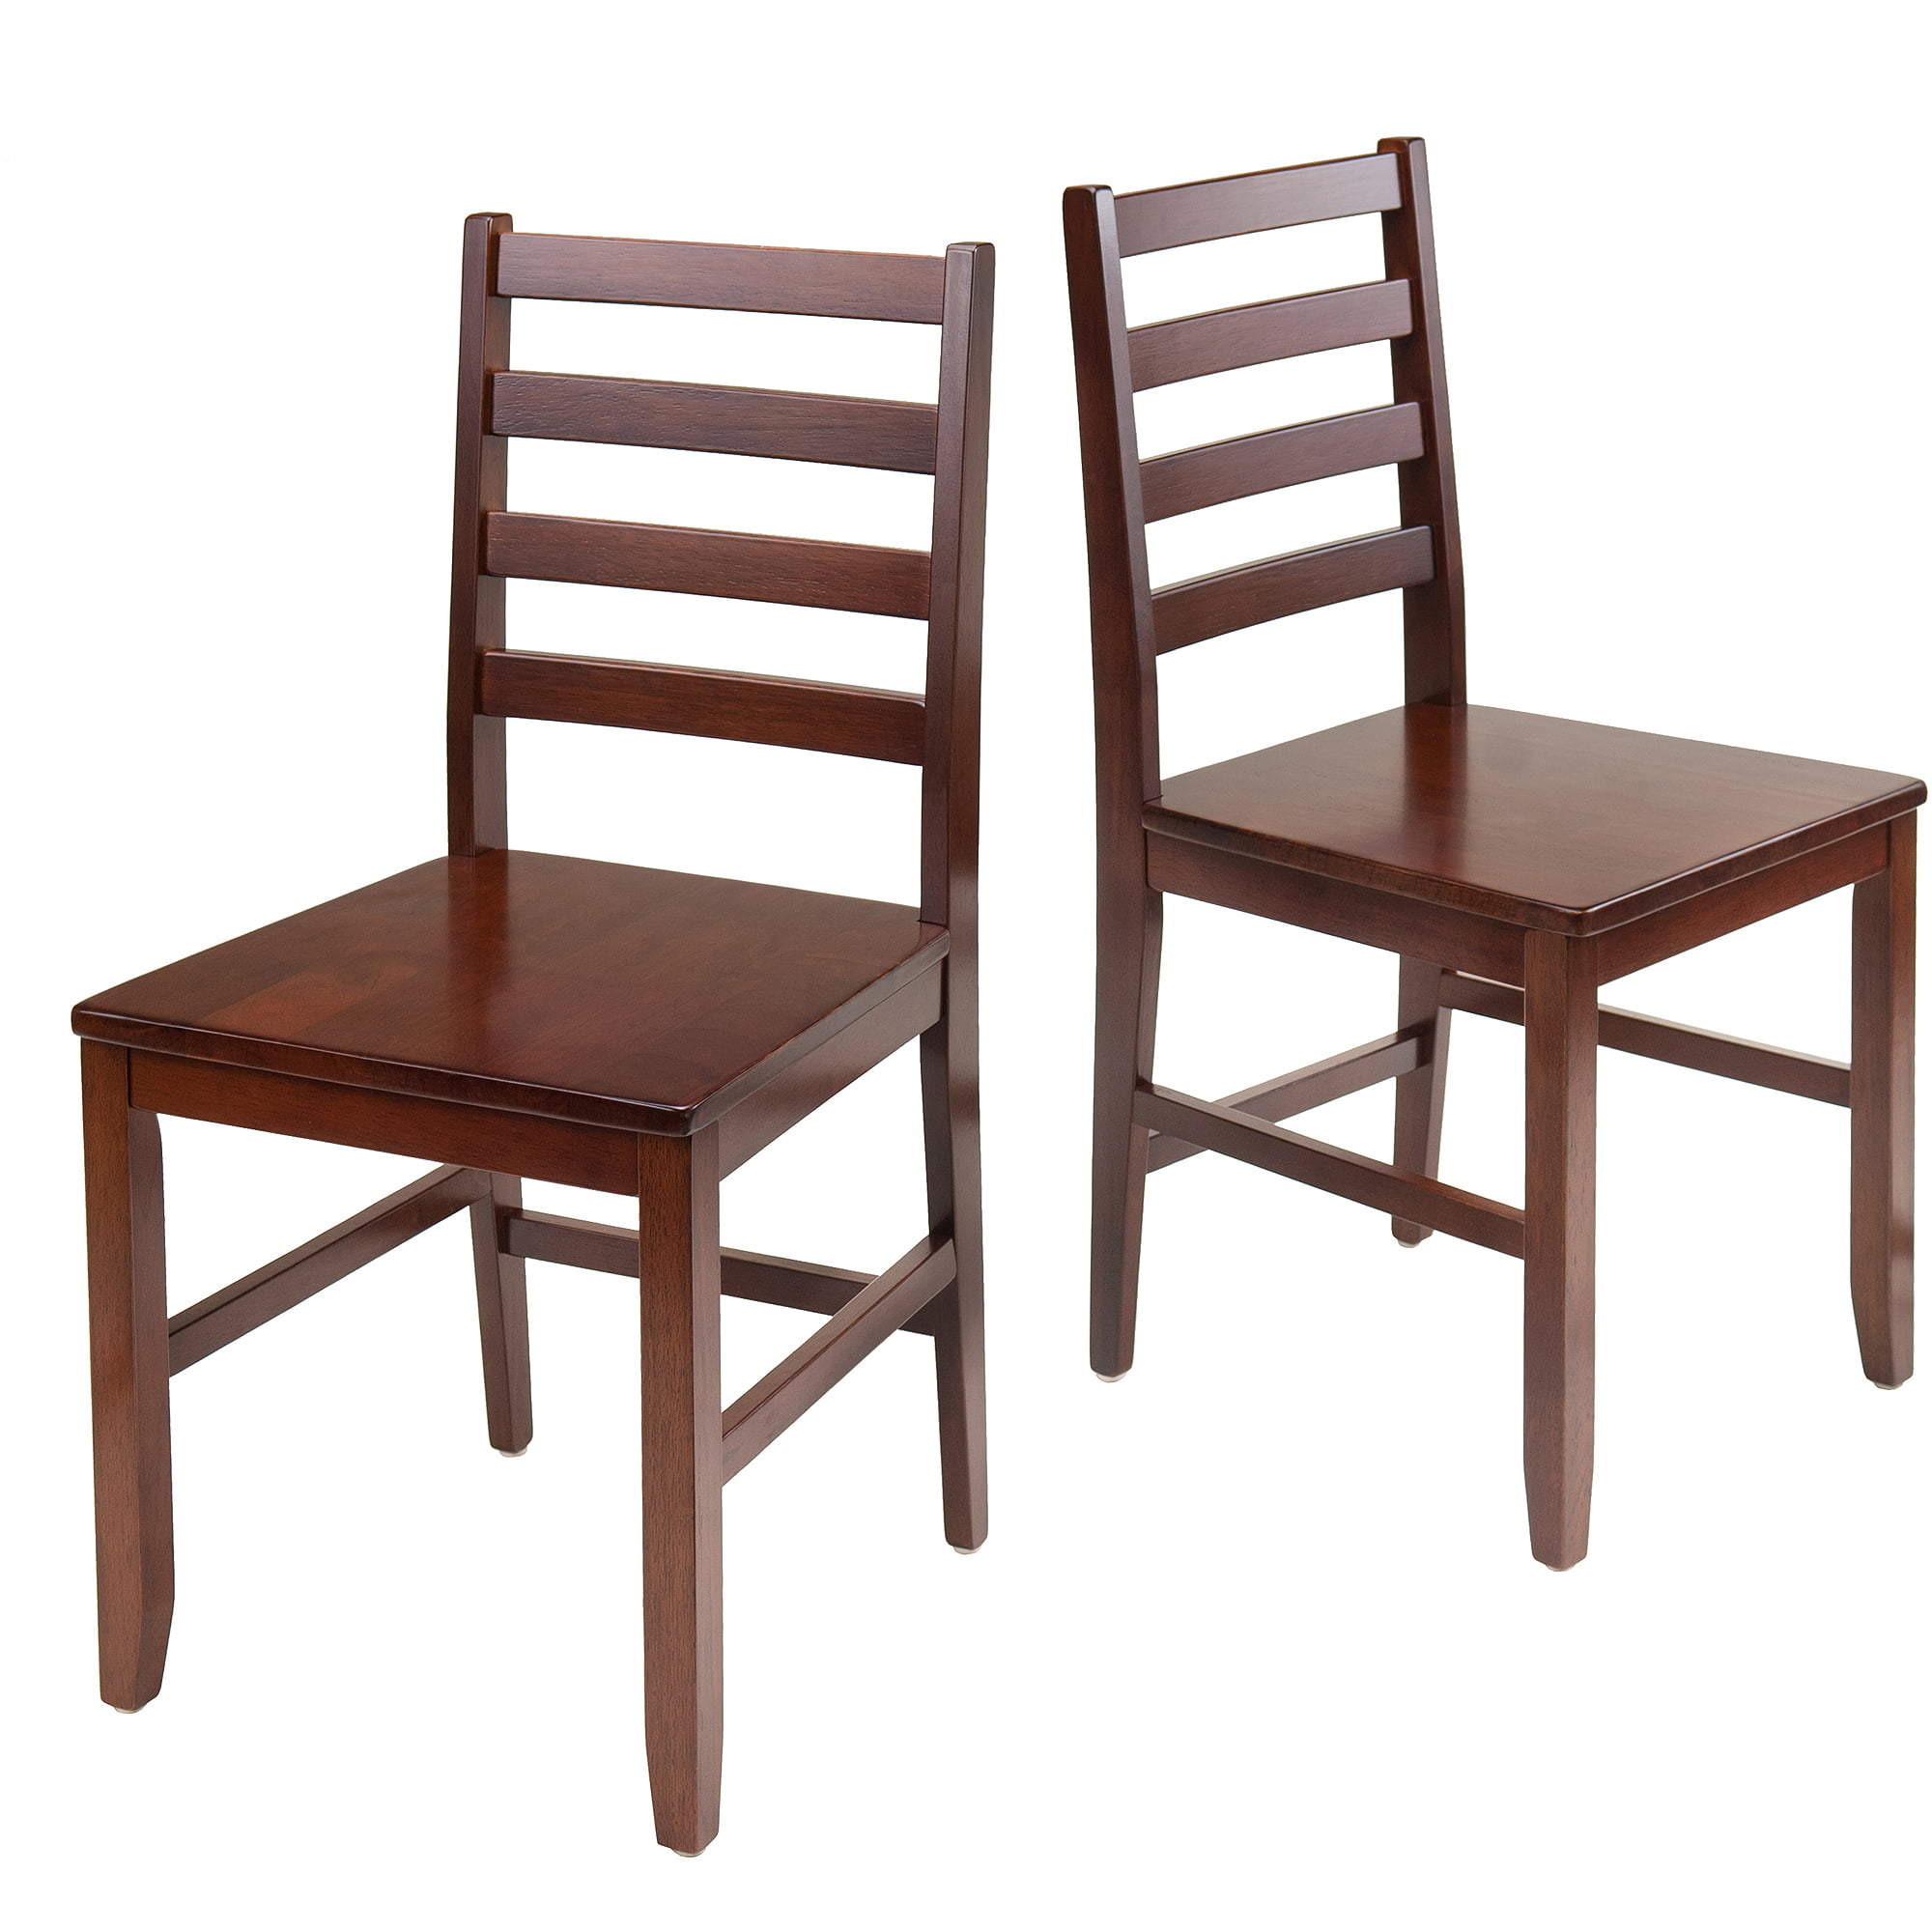 Winsome Wood Hamilton 2 Piece Ladder Back Chair   Walmart.com